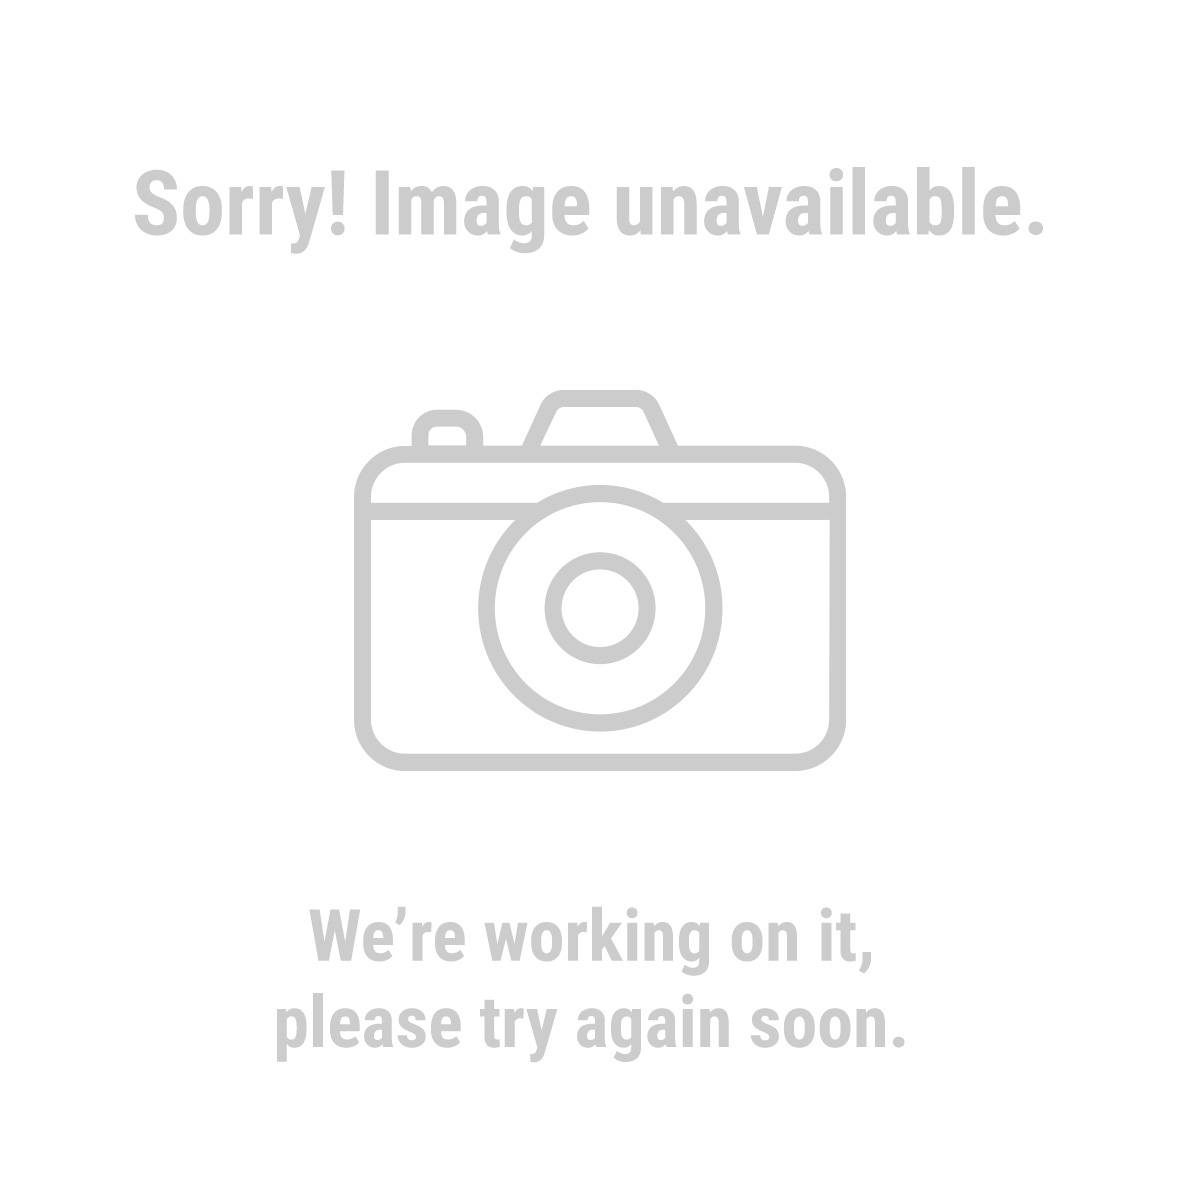 hight resolution of badland winch manual soo i saw in a e mail harbor freight has a coupon for a wireless winch a few months back a member of the forum who drives a jku bought